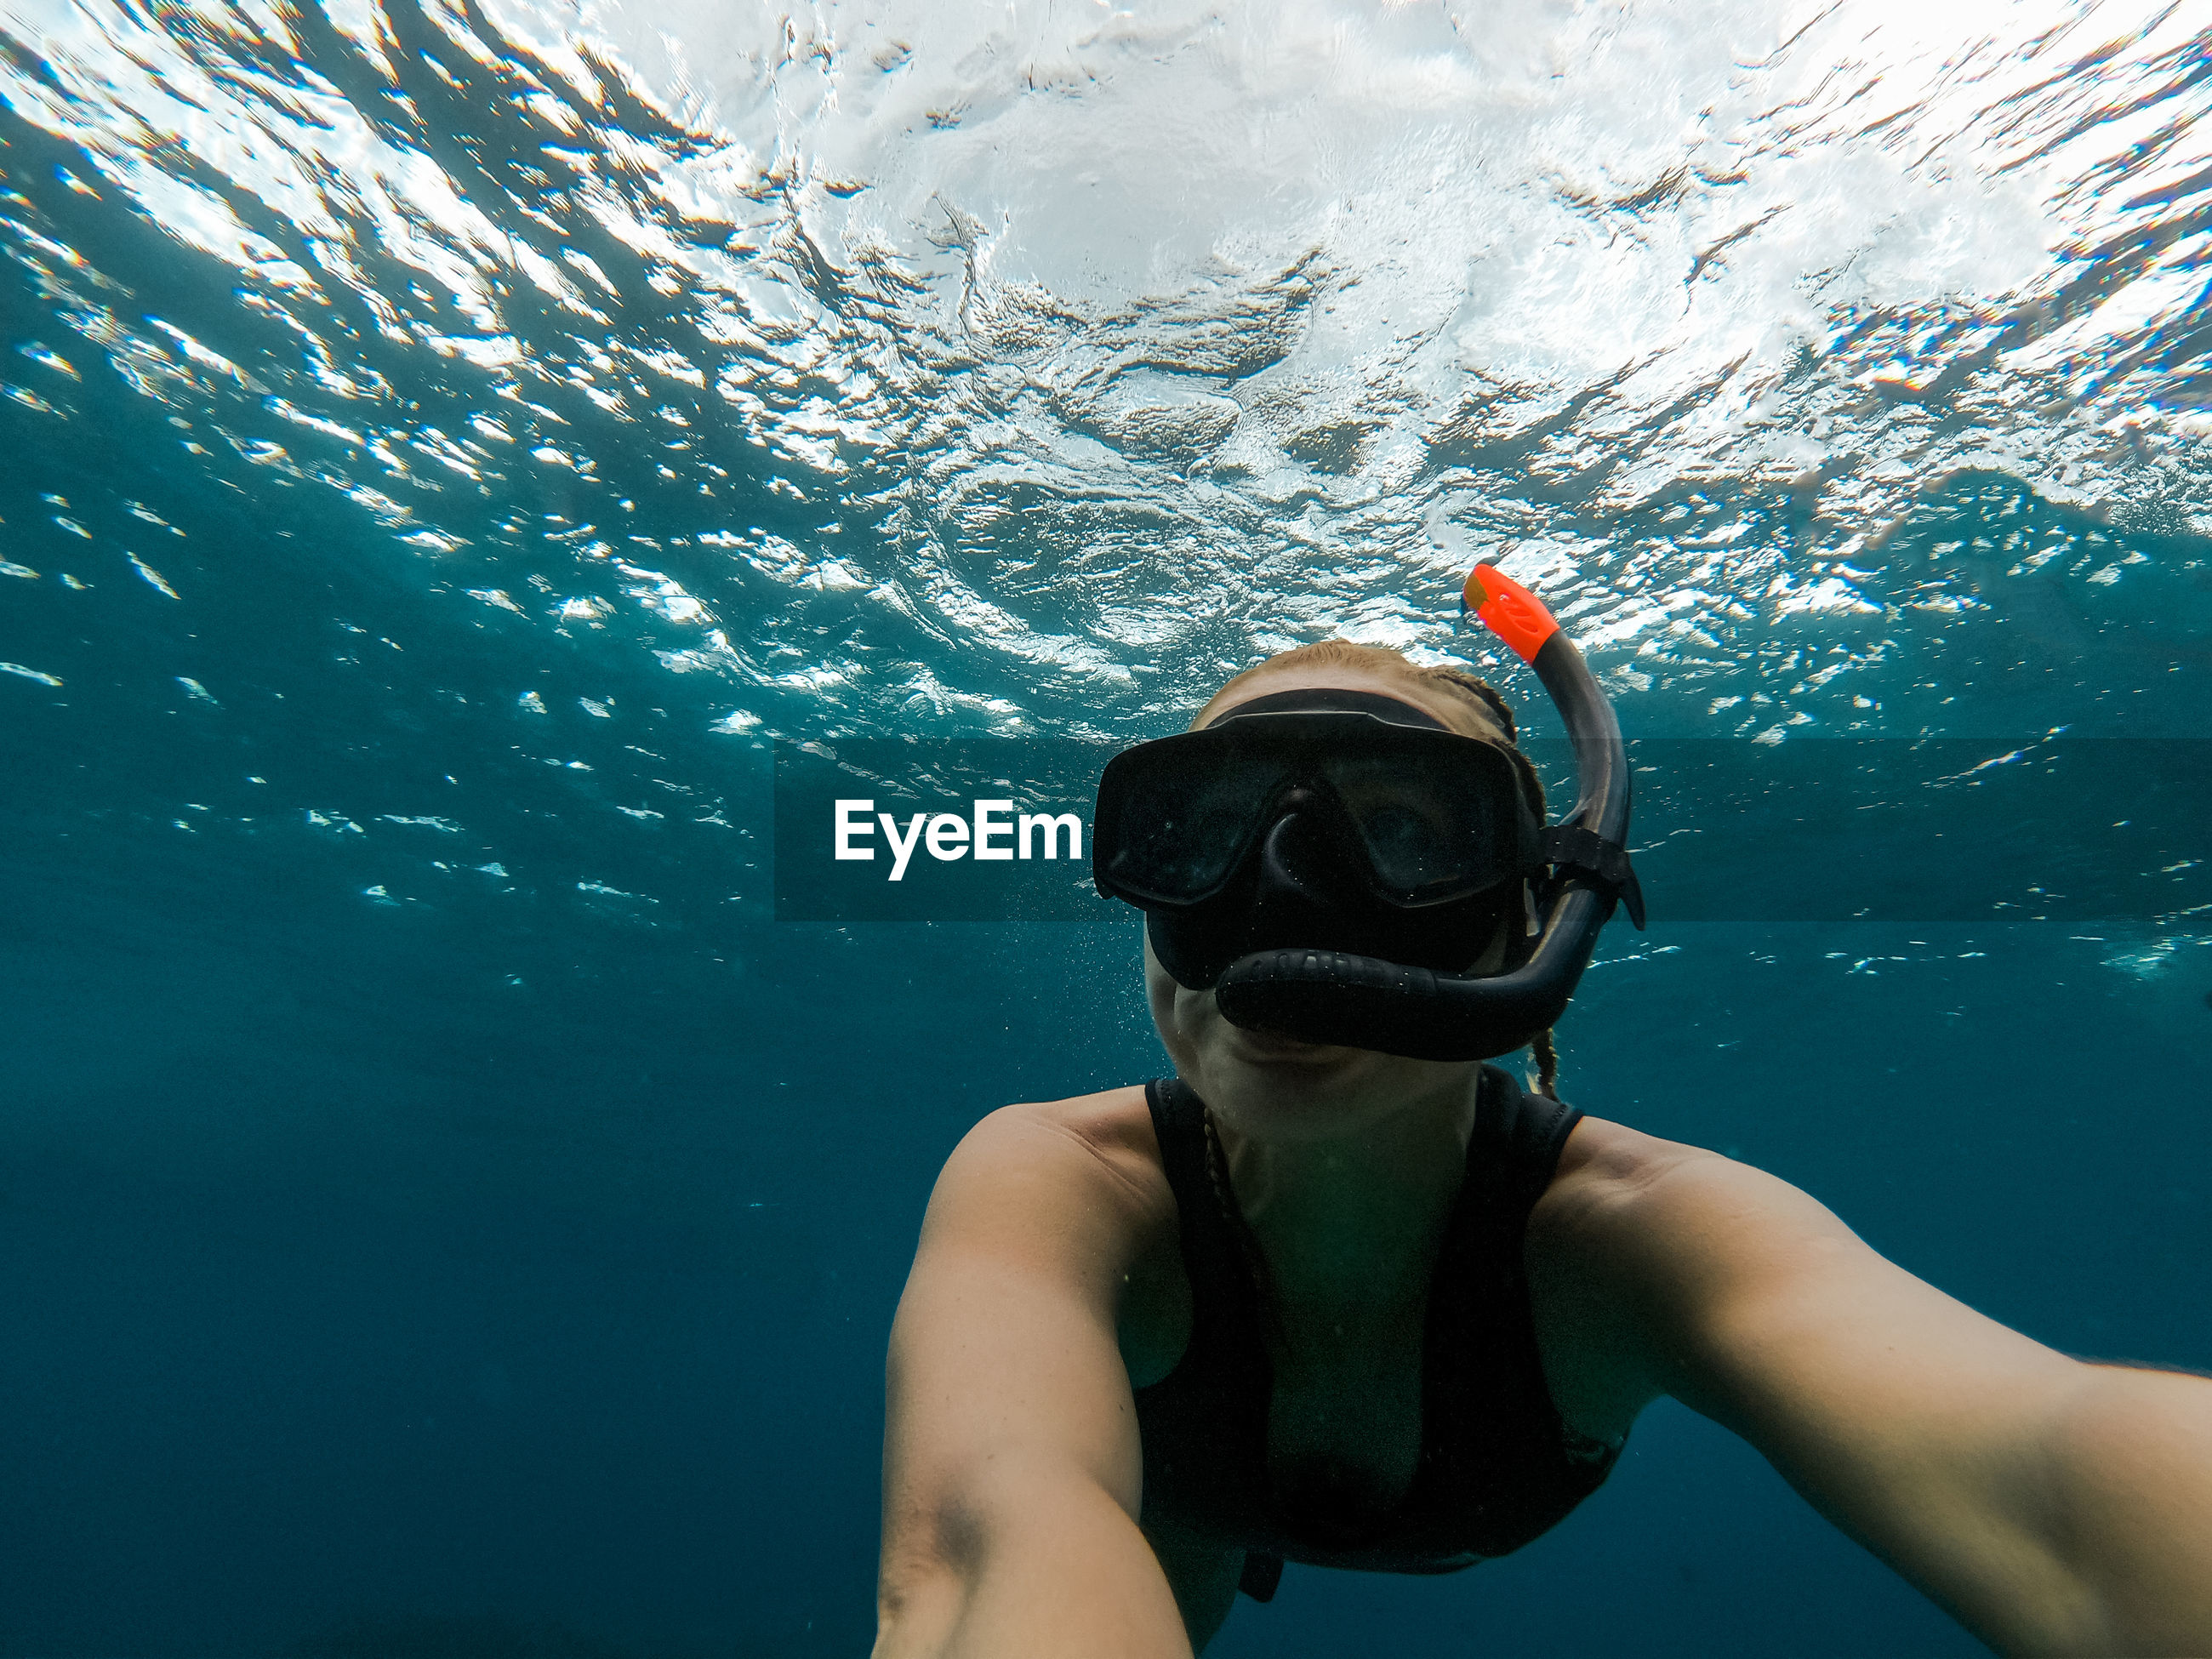 Close-up of woman snorkeling in sea